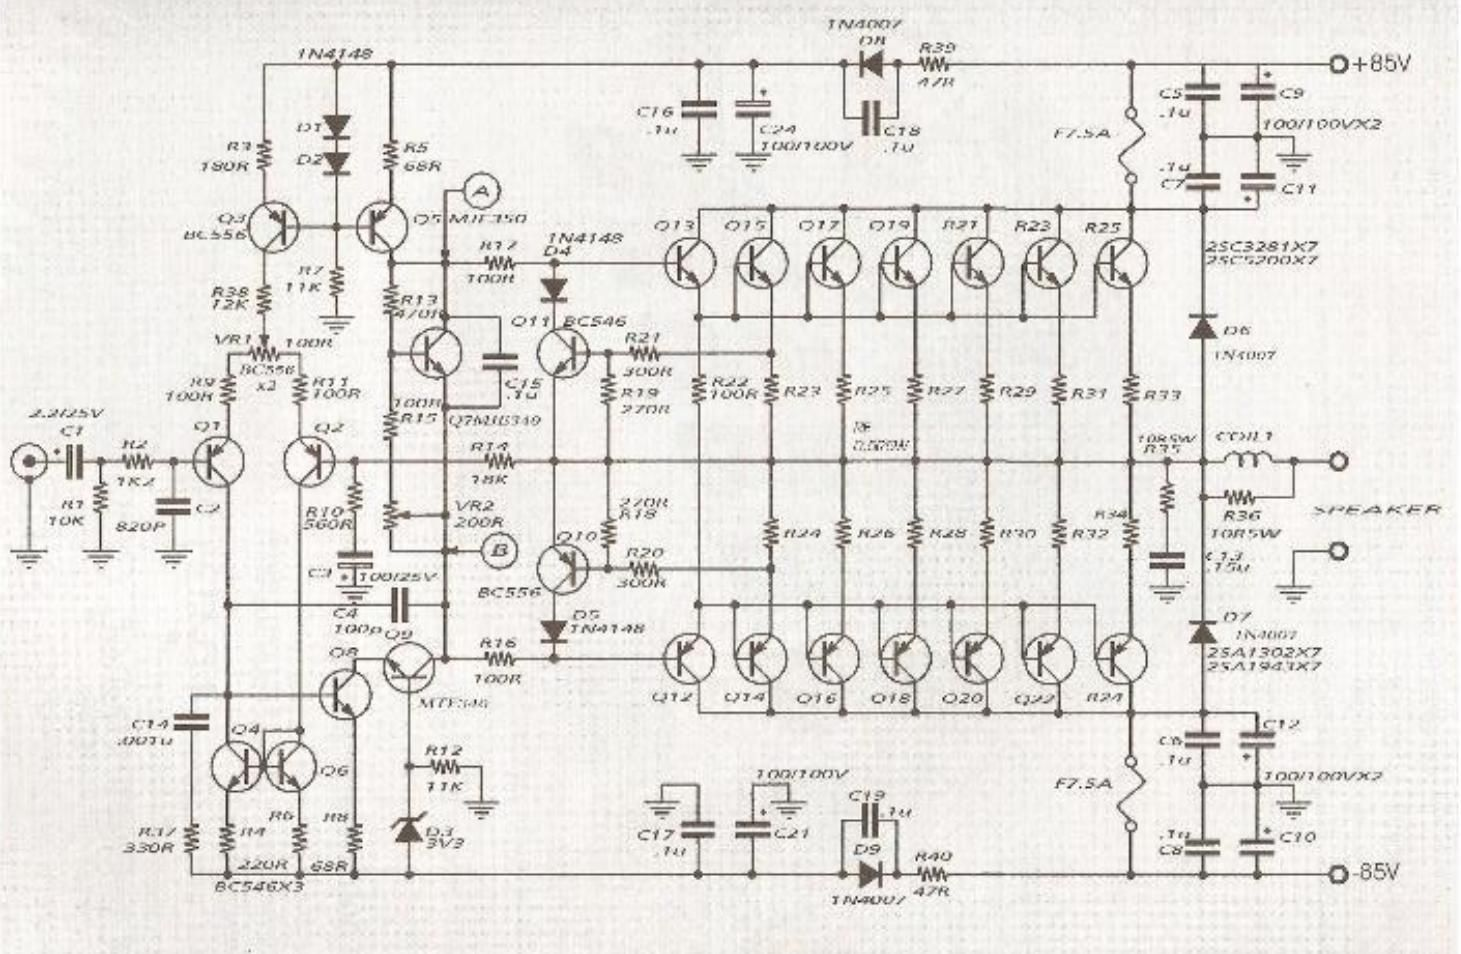 5000 watts amplifier schematic diagrams wiring diagram description 5000 watt amplifier circuit diagram pdf 5000 watts amplifier circuit diagrams [ 1461 x 954 Pixel ]